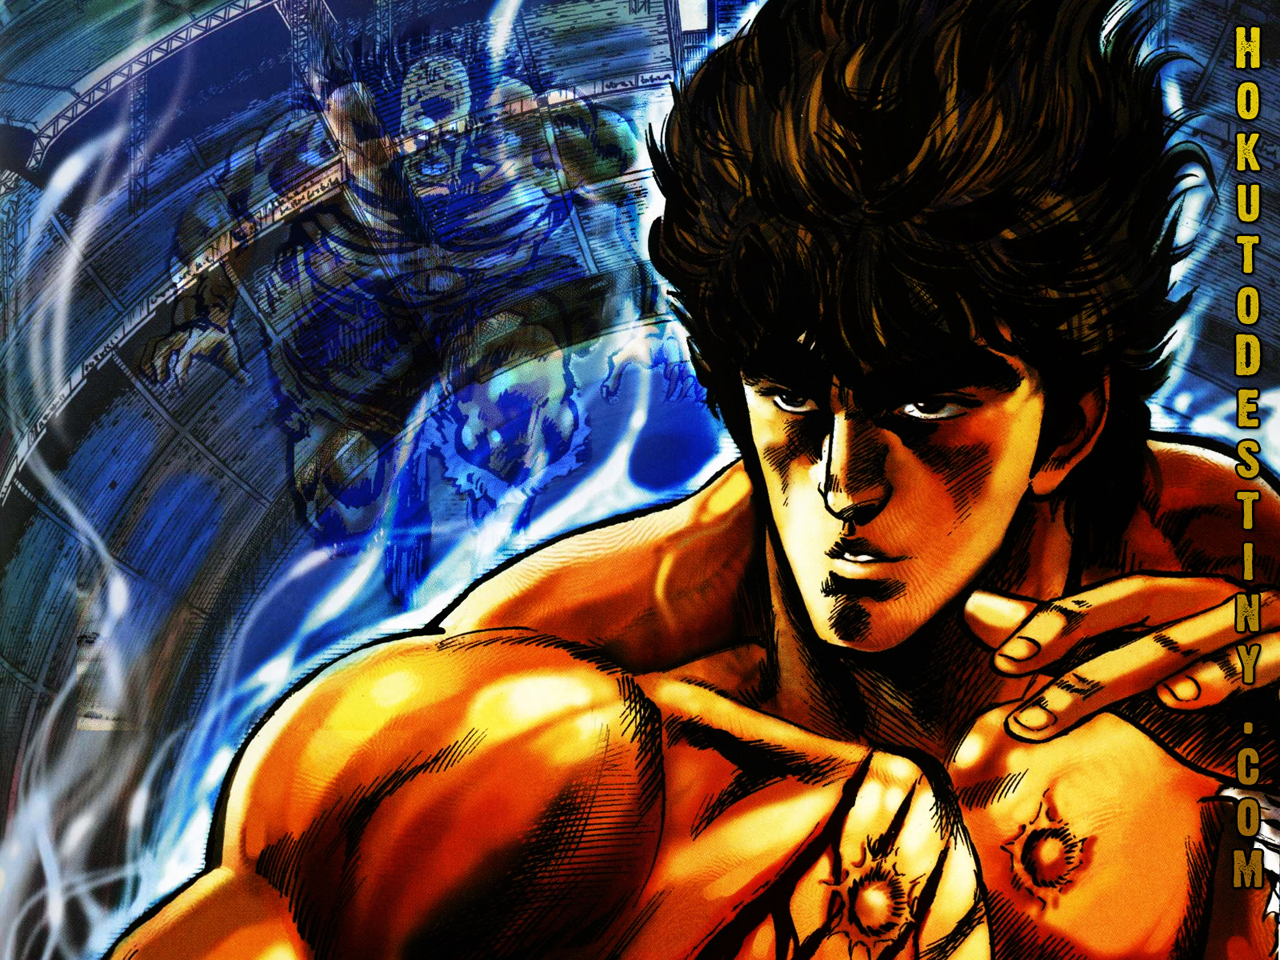 Fist of the North Star Wallpapers Desktop Backgrounds 1280x960 1280x960